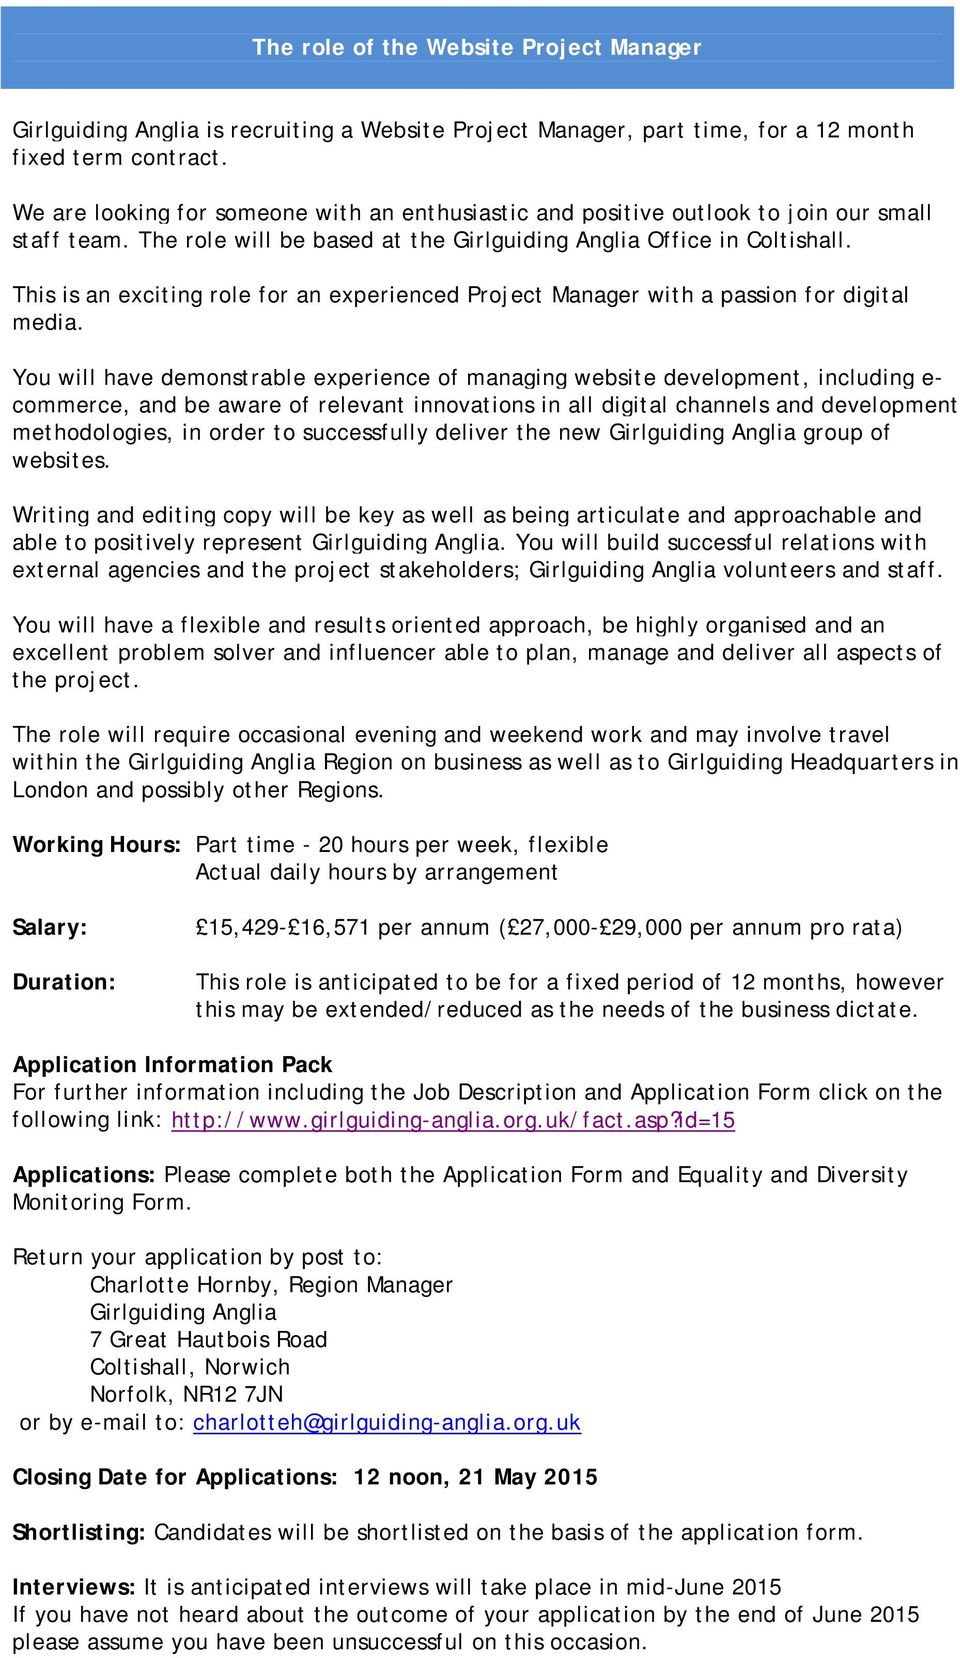 This is an exciting role for an experienced Project Manager with a passion for digital media.